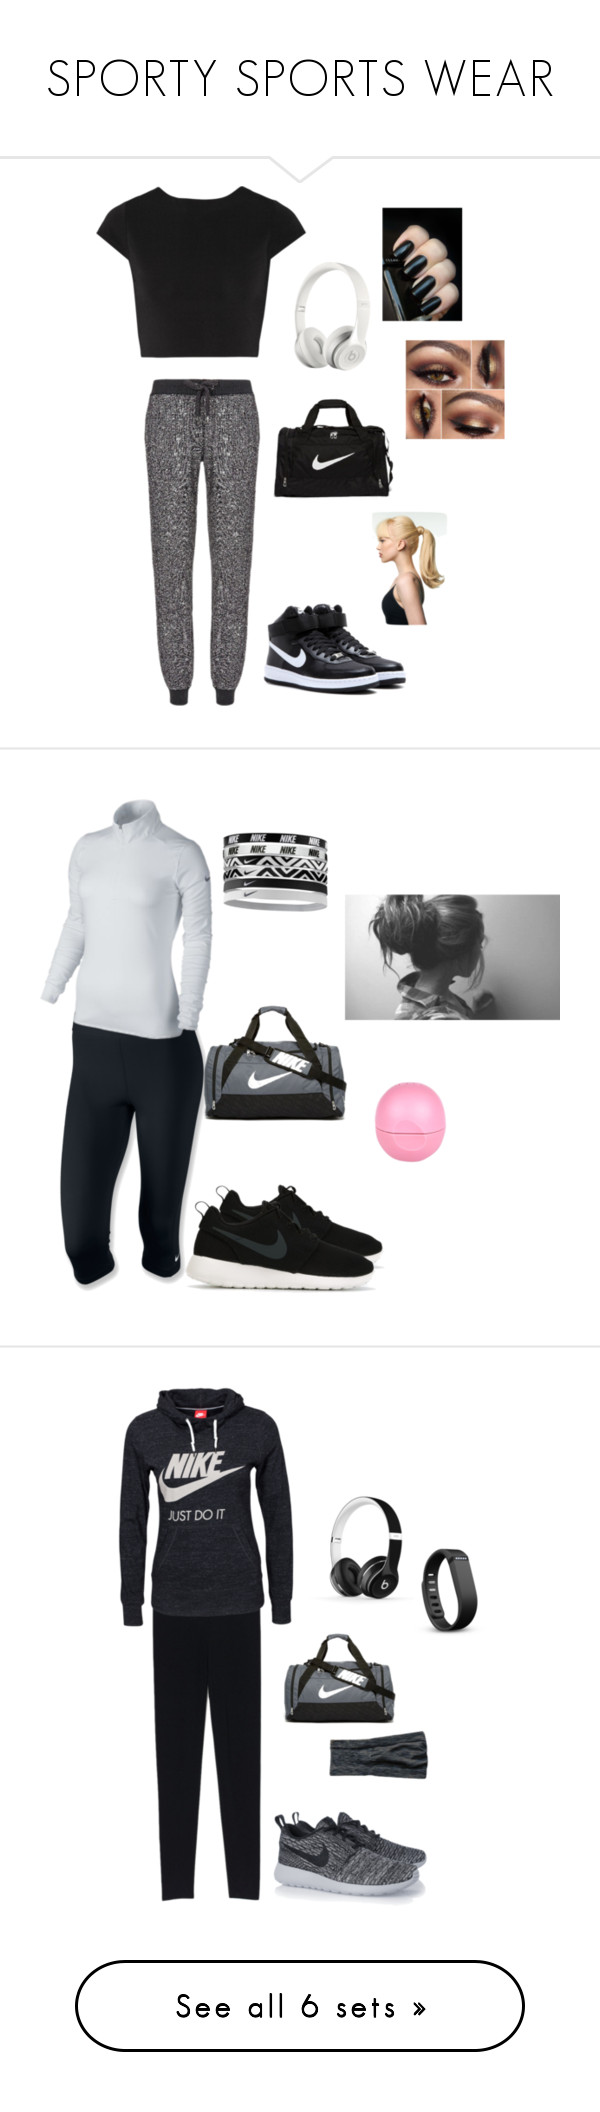 """SPORTY SPORTS WEAR"" by kendalljenner01 ❤ liked on Polyvore featuring beauty, Alice + Olivia, Sweaty Betty, NIKE, Beats by Dr. Dre, Toni&Guy, interior, interiors, interior design and home"